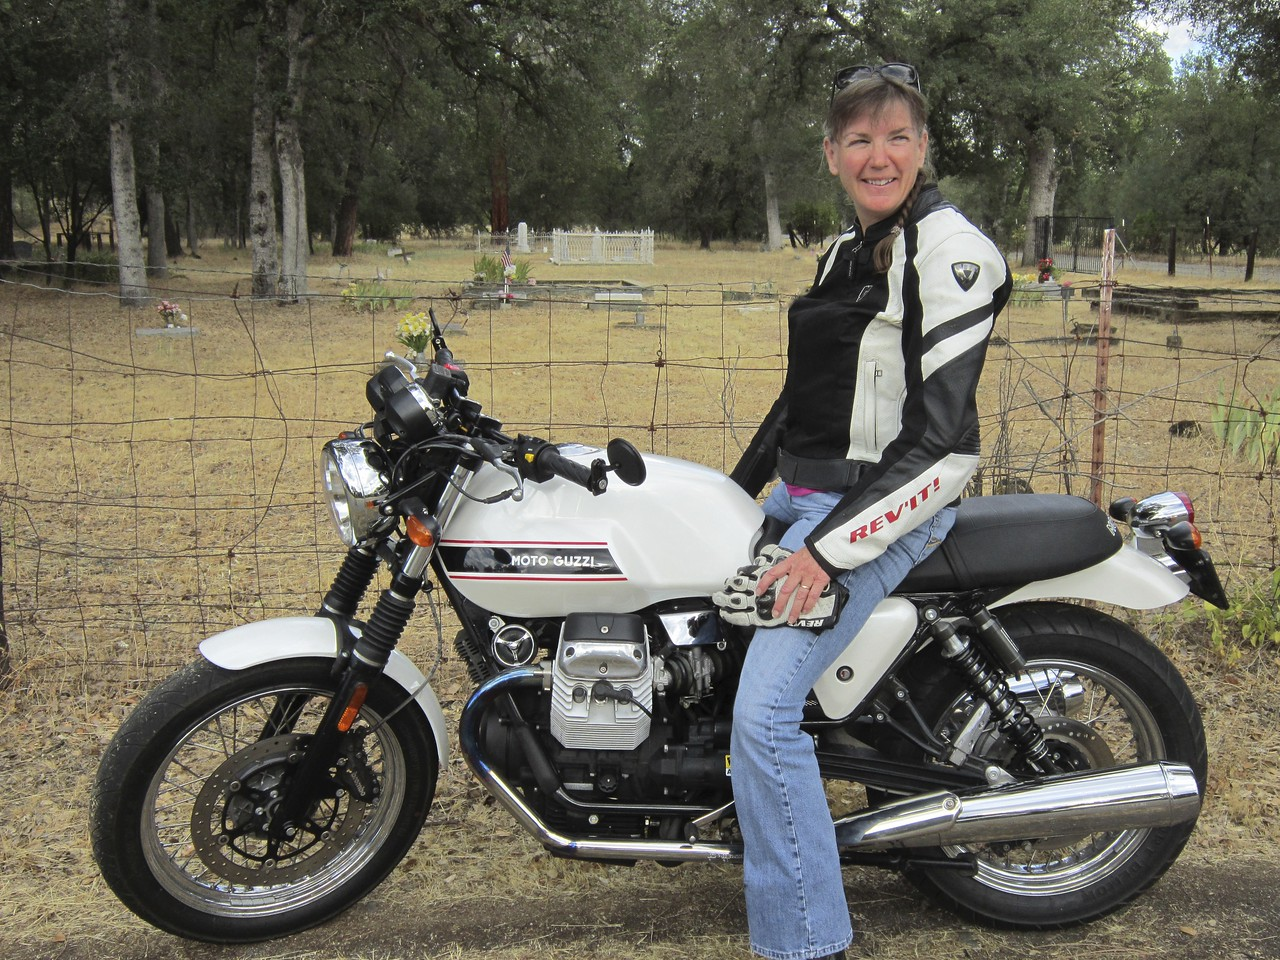 Took Guzzi #1 for a test spin.  The cafe version rides nicely!  Cafe items: rear shocks, fork gaiters, flat handle bar, bar end mirrors, bobbed rear fender, cafe seat on order.  Drivers pull alongside to look at it.  Now the hard part, finding a hip cafe in Redding.